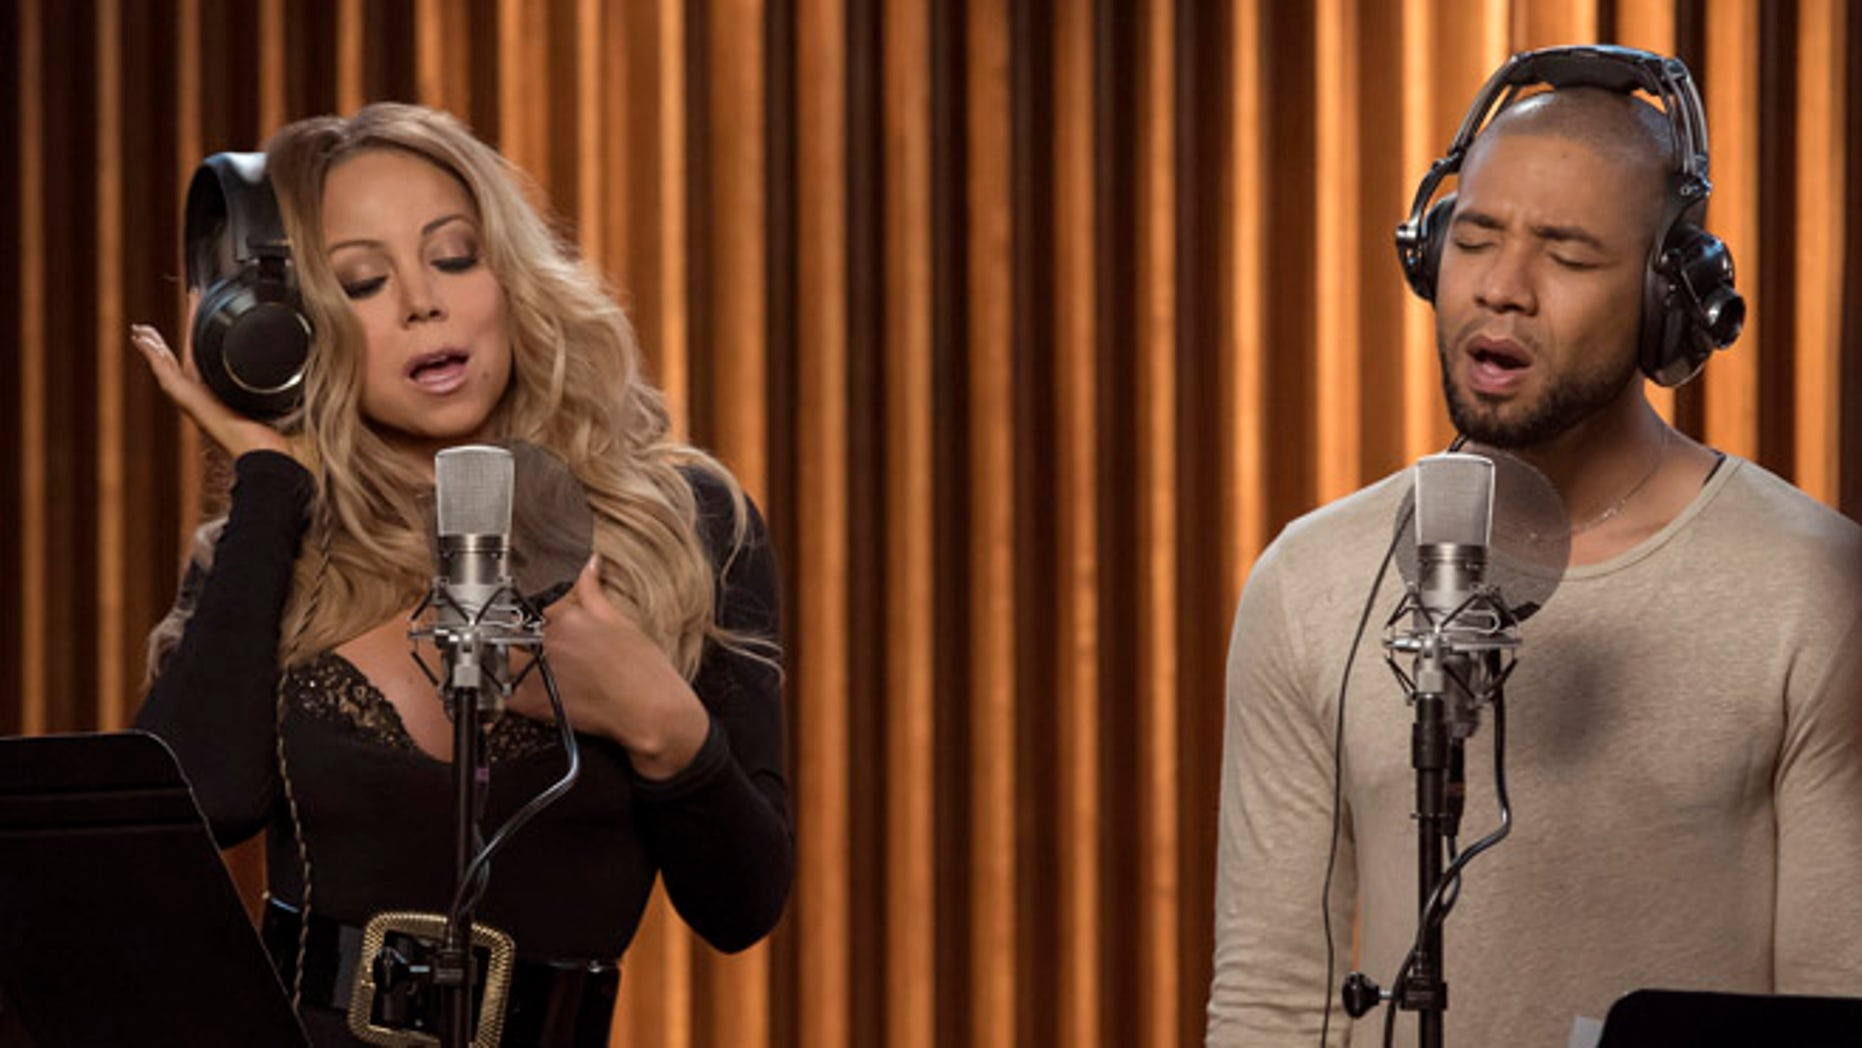 """EMPIRE: Pictured L-R: Guest star Mariah Carey and Jussie Smollett in the """"What Remains is Bestial"""" episode of EMPIRE airing Wednesday, Oct. 5 (9:00-10:00 PM ET/PT) on FOX. ©2016 Fox Broadcasting Co. CR: Chuck Hodes/FOX"""